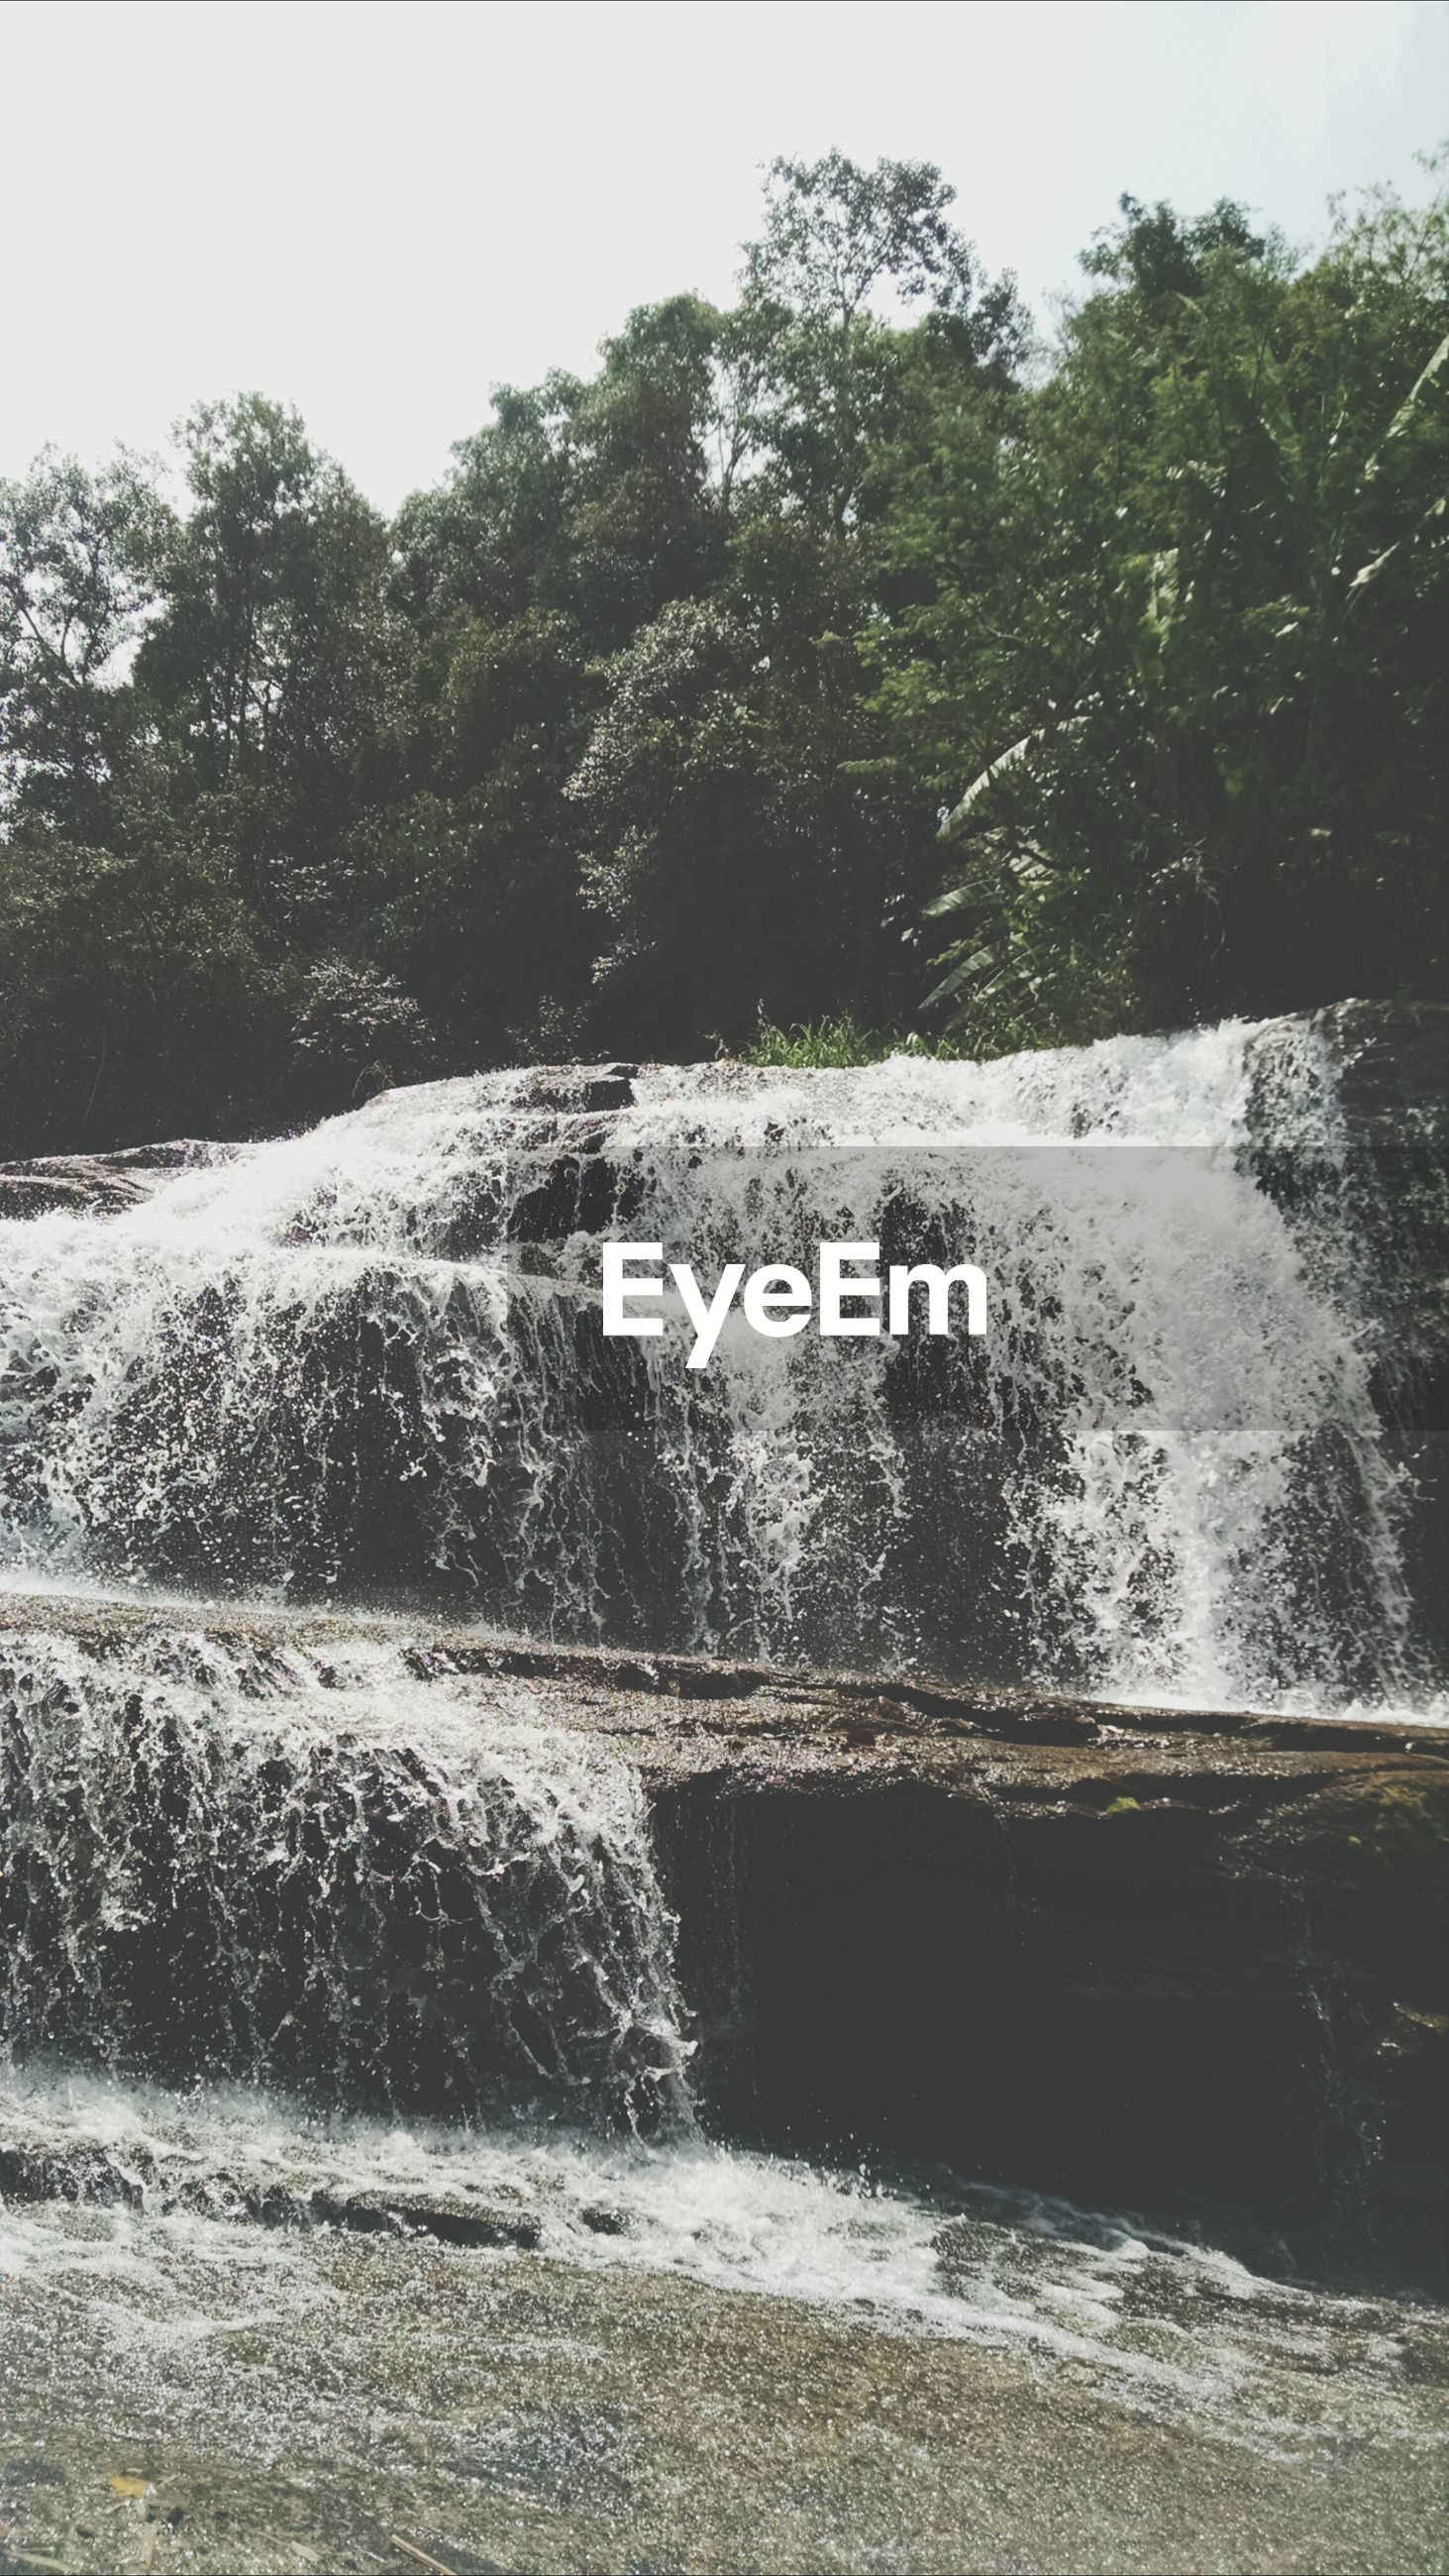 water, tree, motion, flowing water, nature, fountain, splashing, rock - object, beauty in nature, day, flowing, waterfall, tranquility, scenics, waterfront, growth, outdoors, no people, park - man made space, clear sky